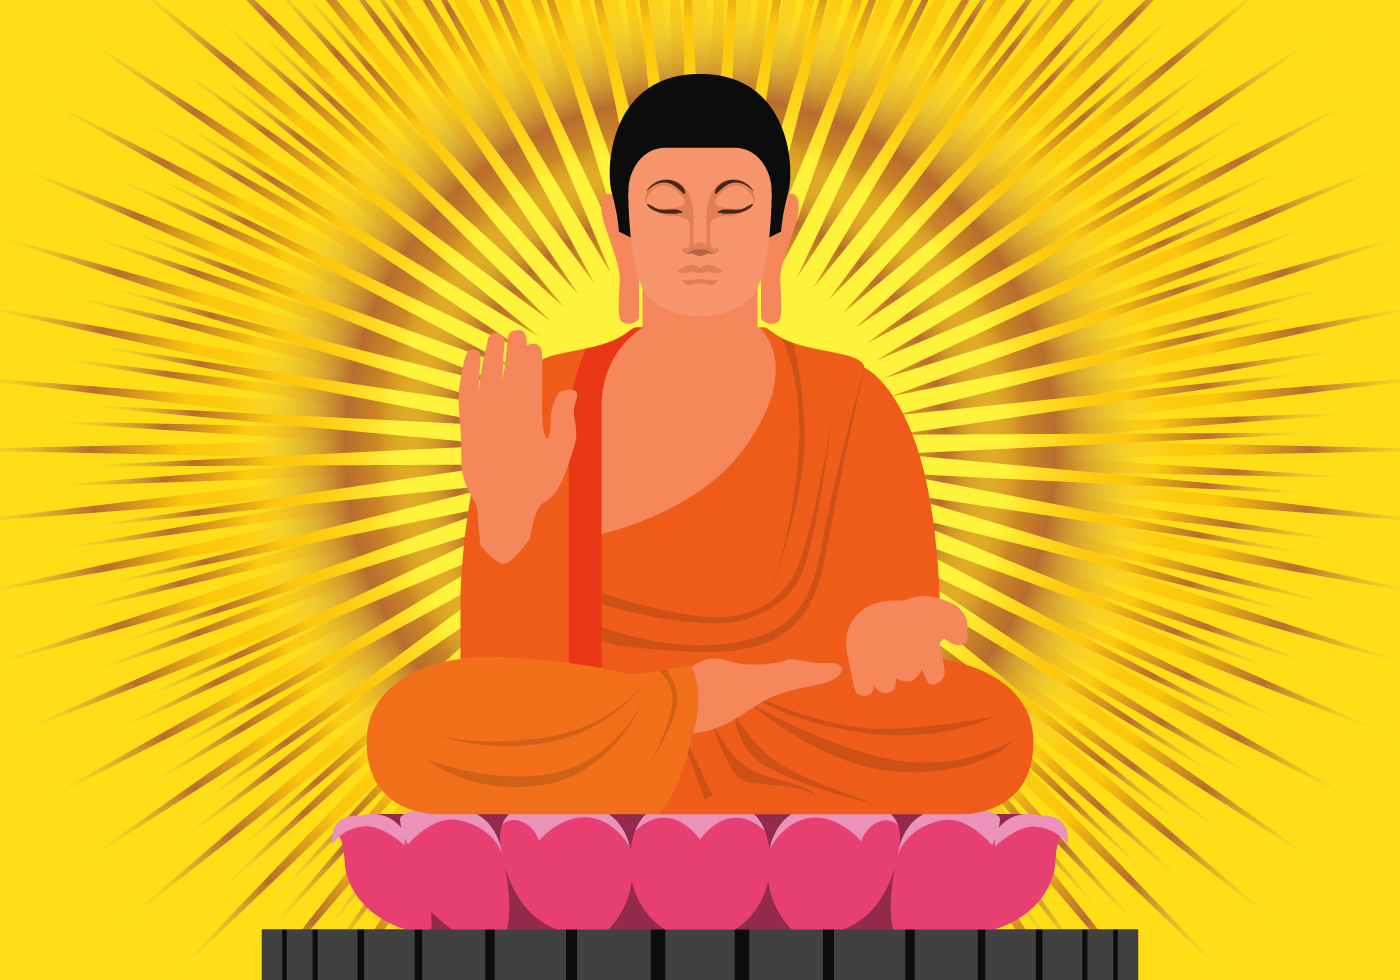 buddha in protection position illustration download free vector art stock graphics images. Black Bedroom Furniture Sets. Home Design Ideas